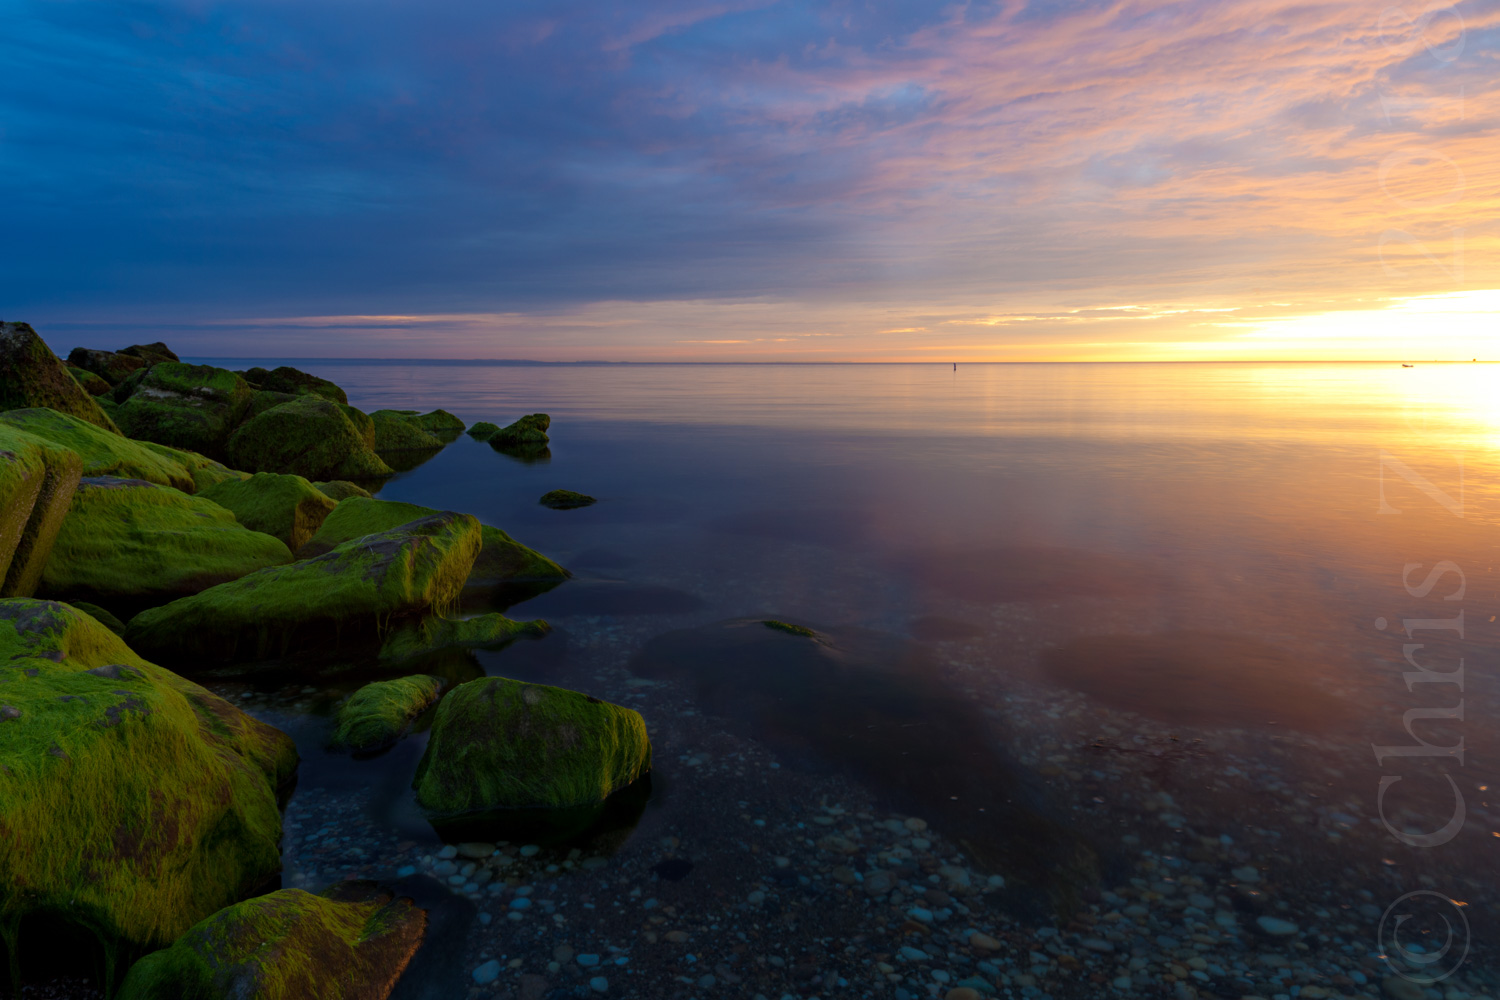 """Long Island Attorney - """"I absolutely love Chris' photographs in my office. They are peaceful and calming and bring me such happiness. The photographs wonderfully represent the beauty of Long Island.""""Joanne E., Attorney, NY"""